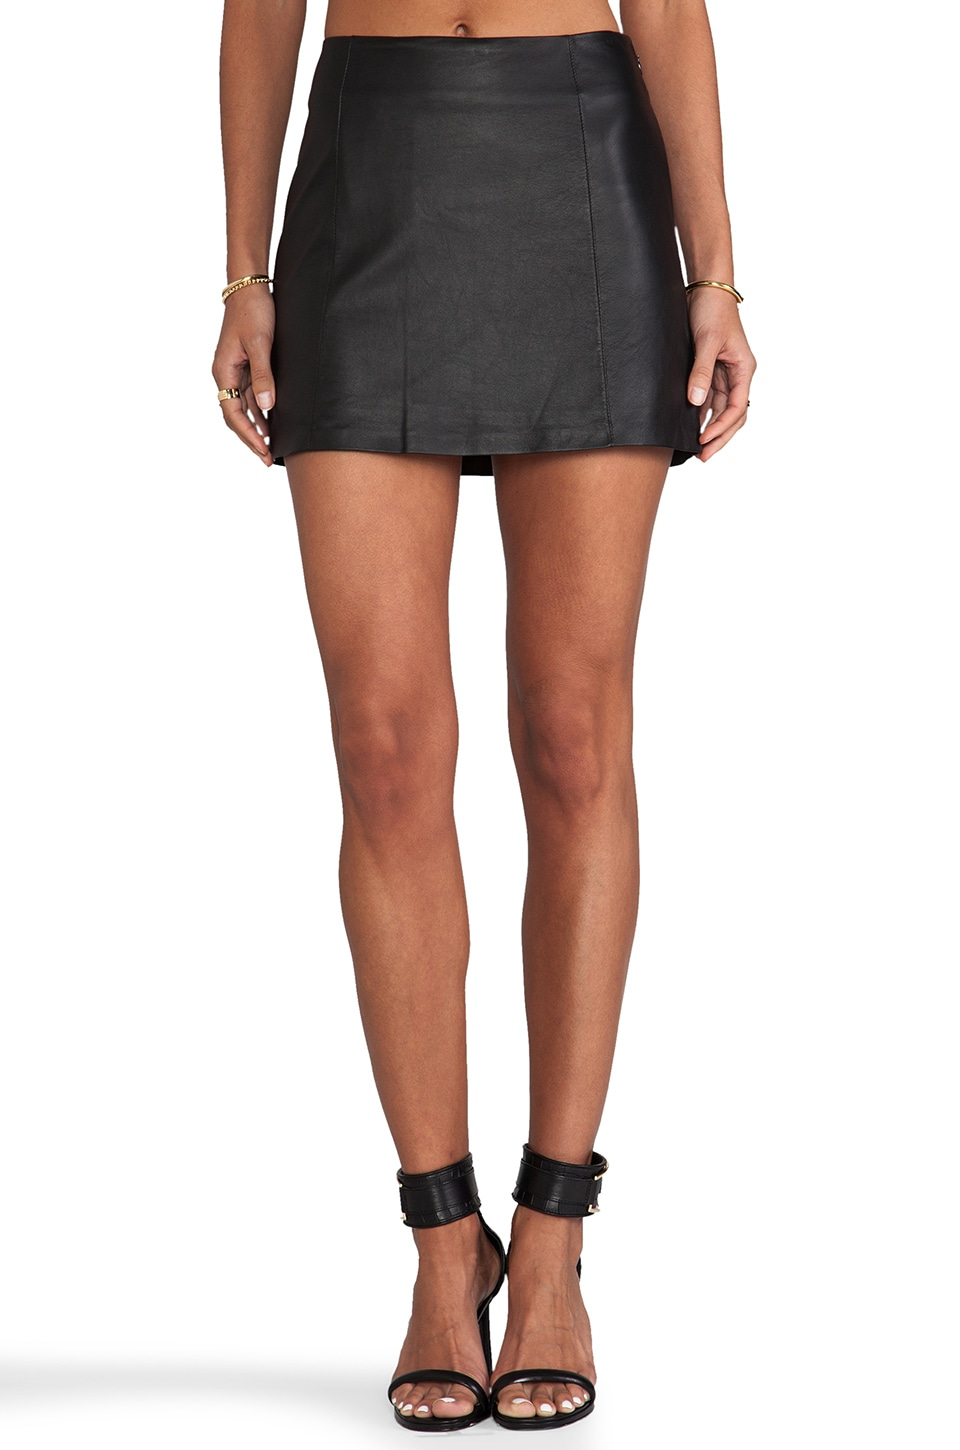 T by Alexander Wang Lightweight Leather A-Line Skirt in Black